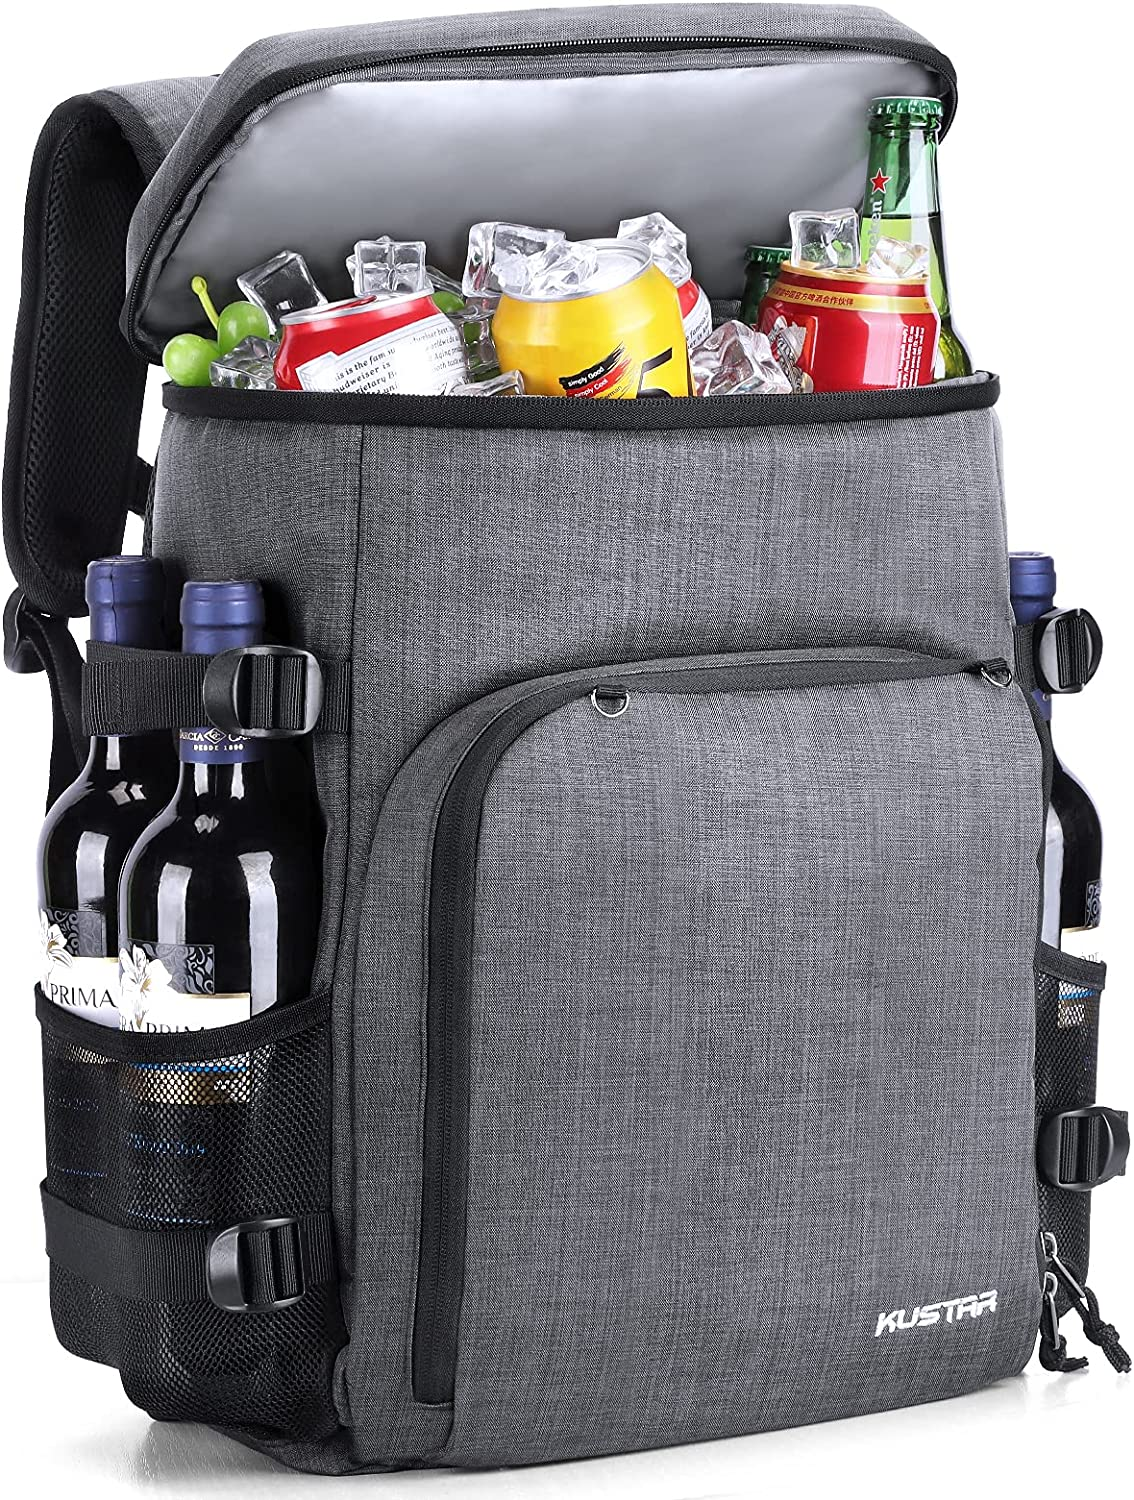 Cooler Backpack 35 Cans,Insulated Leak-Proof Cooler Bag Large Capacity for Lunch Bag Camping,Picnic,Hiking,Fishing,Kayaking,Sports & Beach